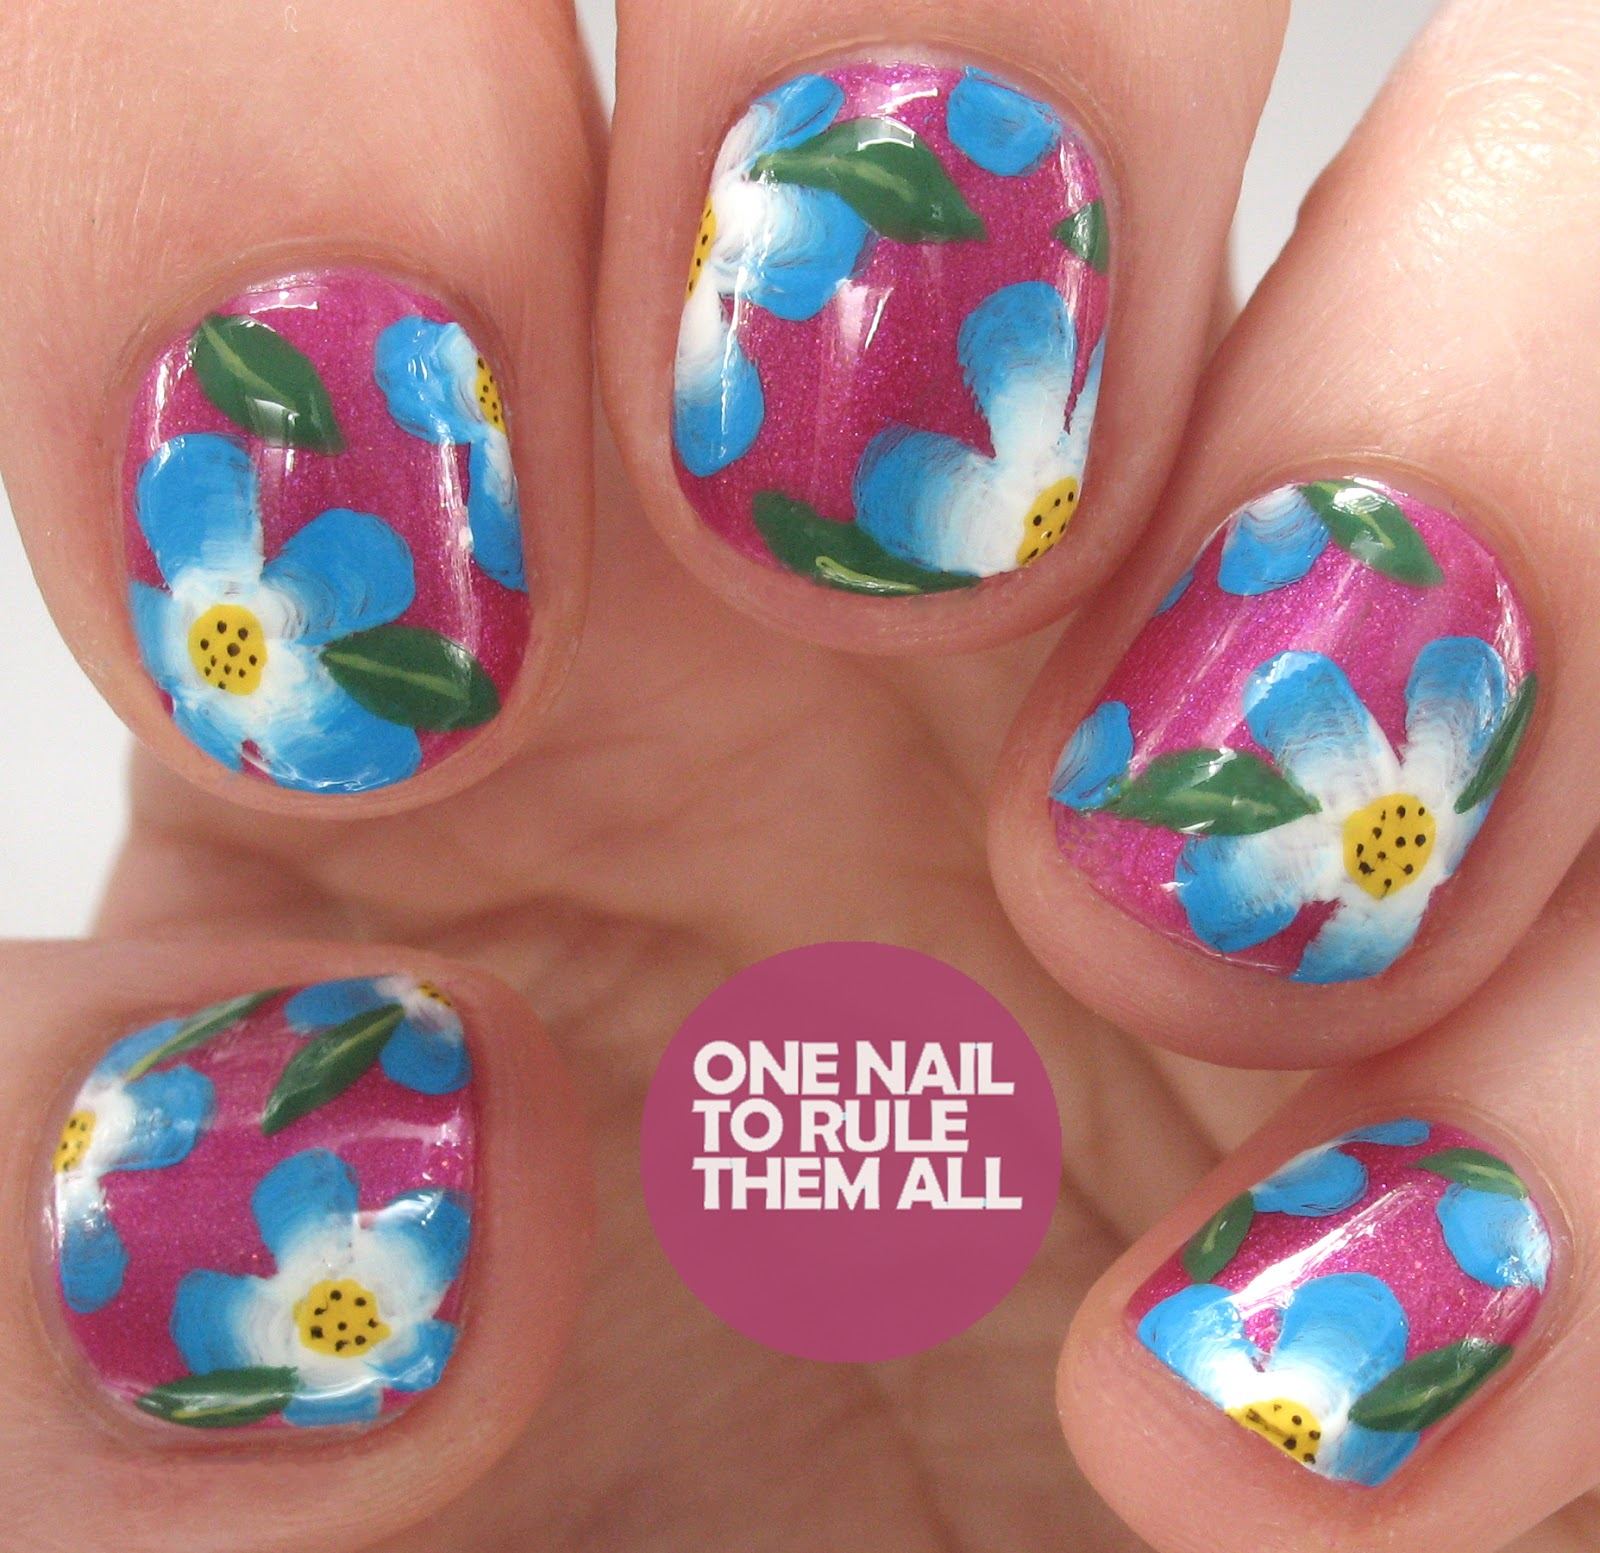 One Nail To Rule Them All: Gelish One Stroke Flowers Nail Art